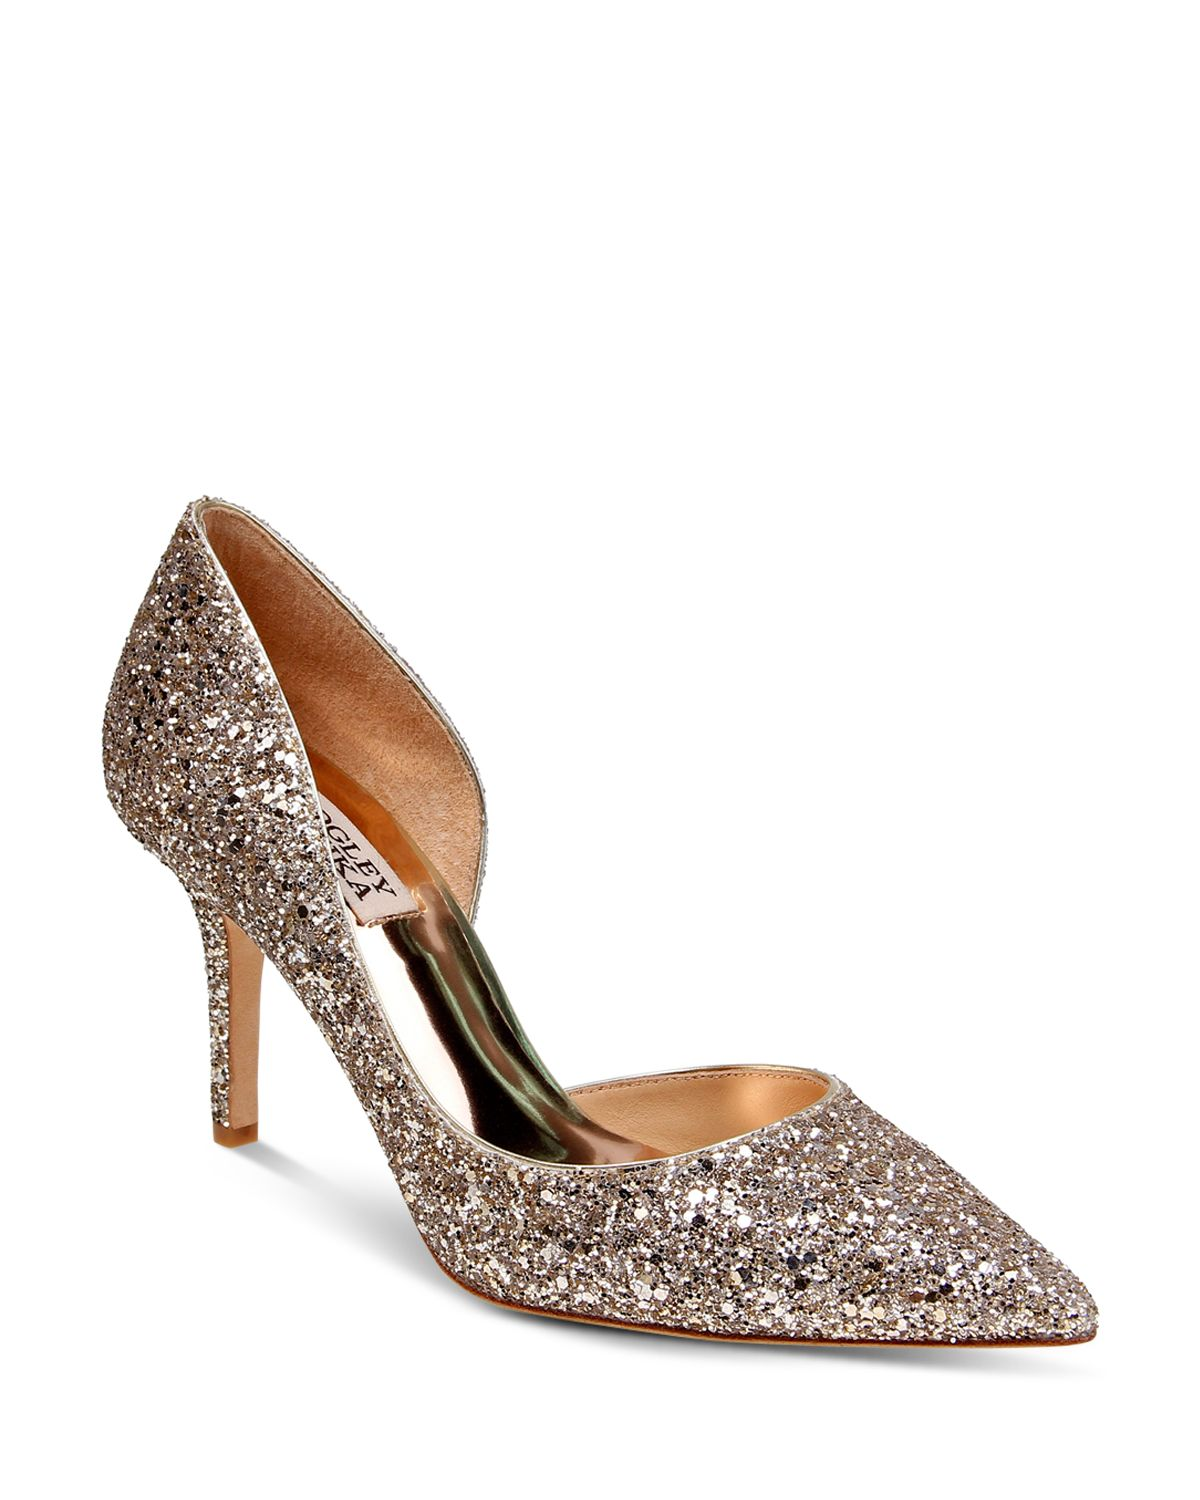 Badgley Mischka Daisy D'Orsay Pumps Women's Shoes